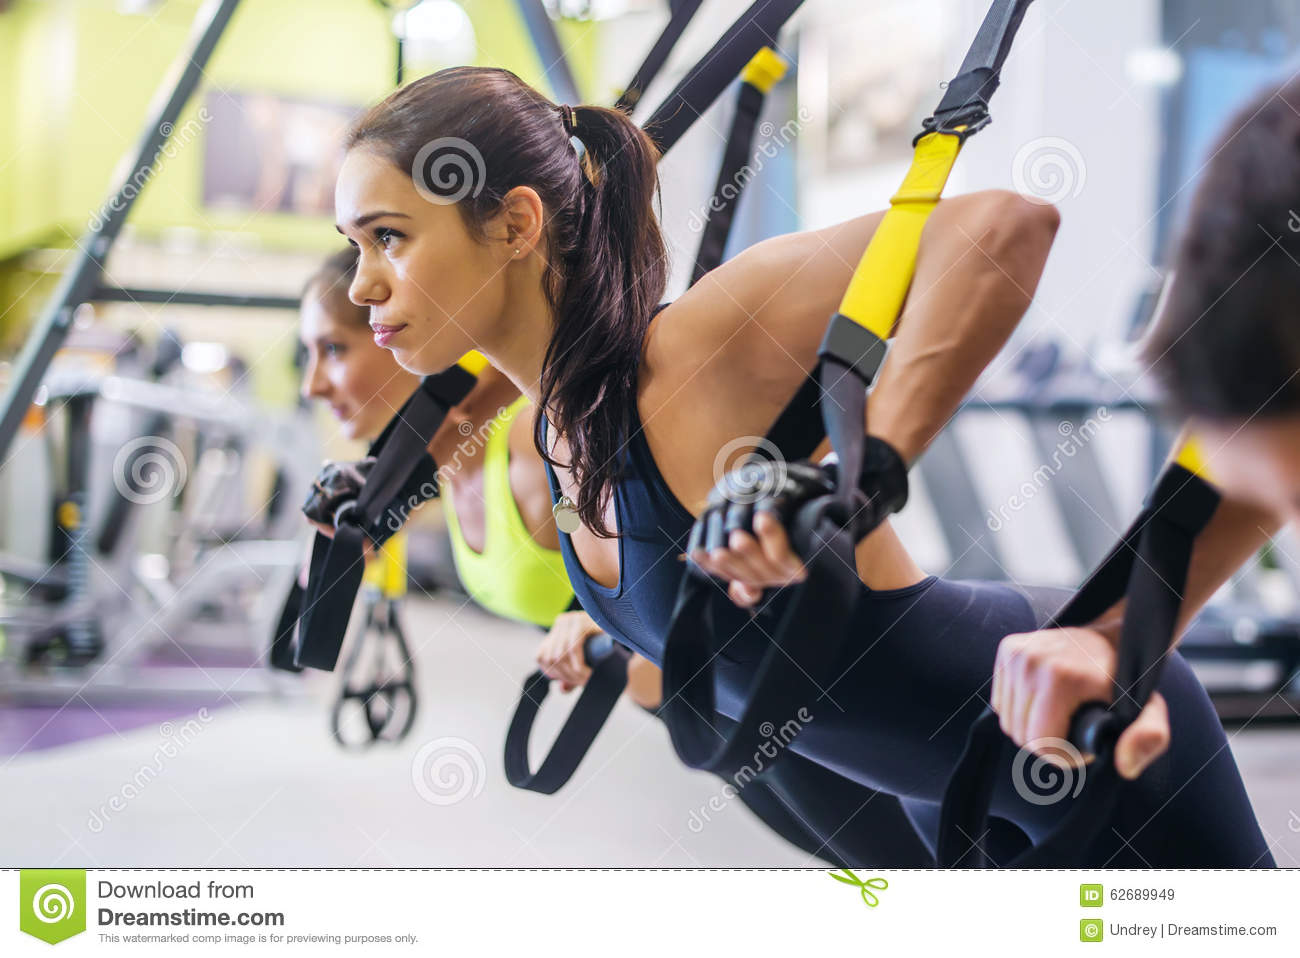 Women doing push ups training arms with trx